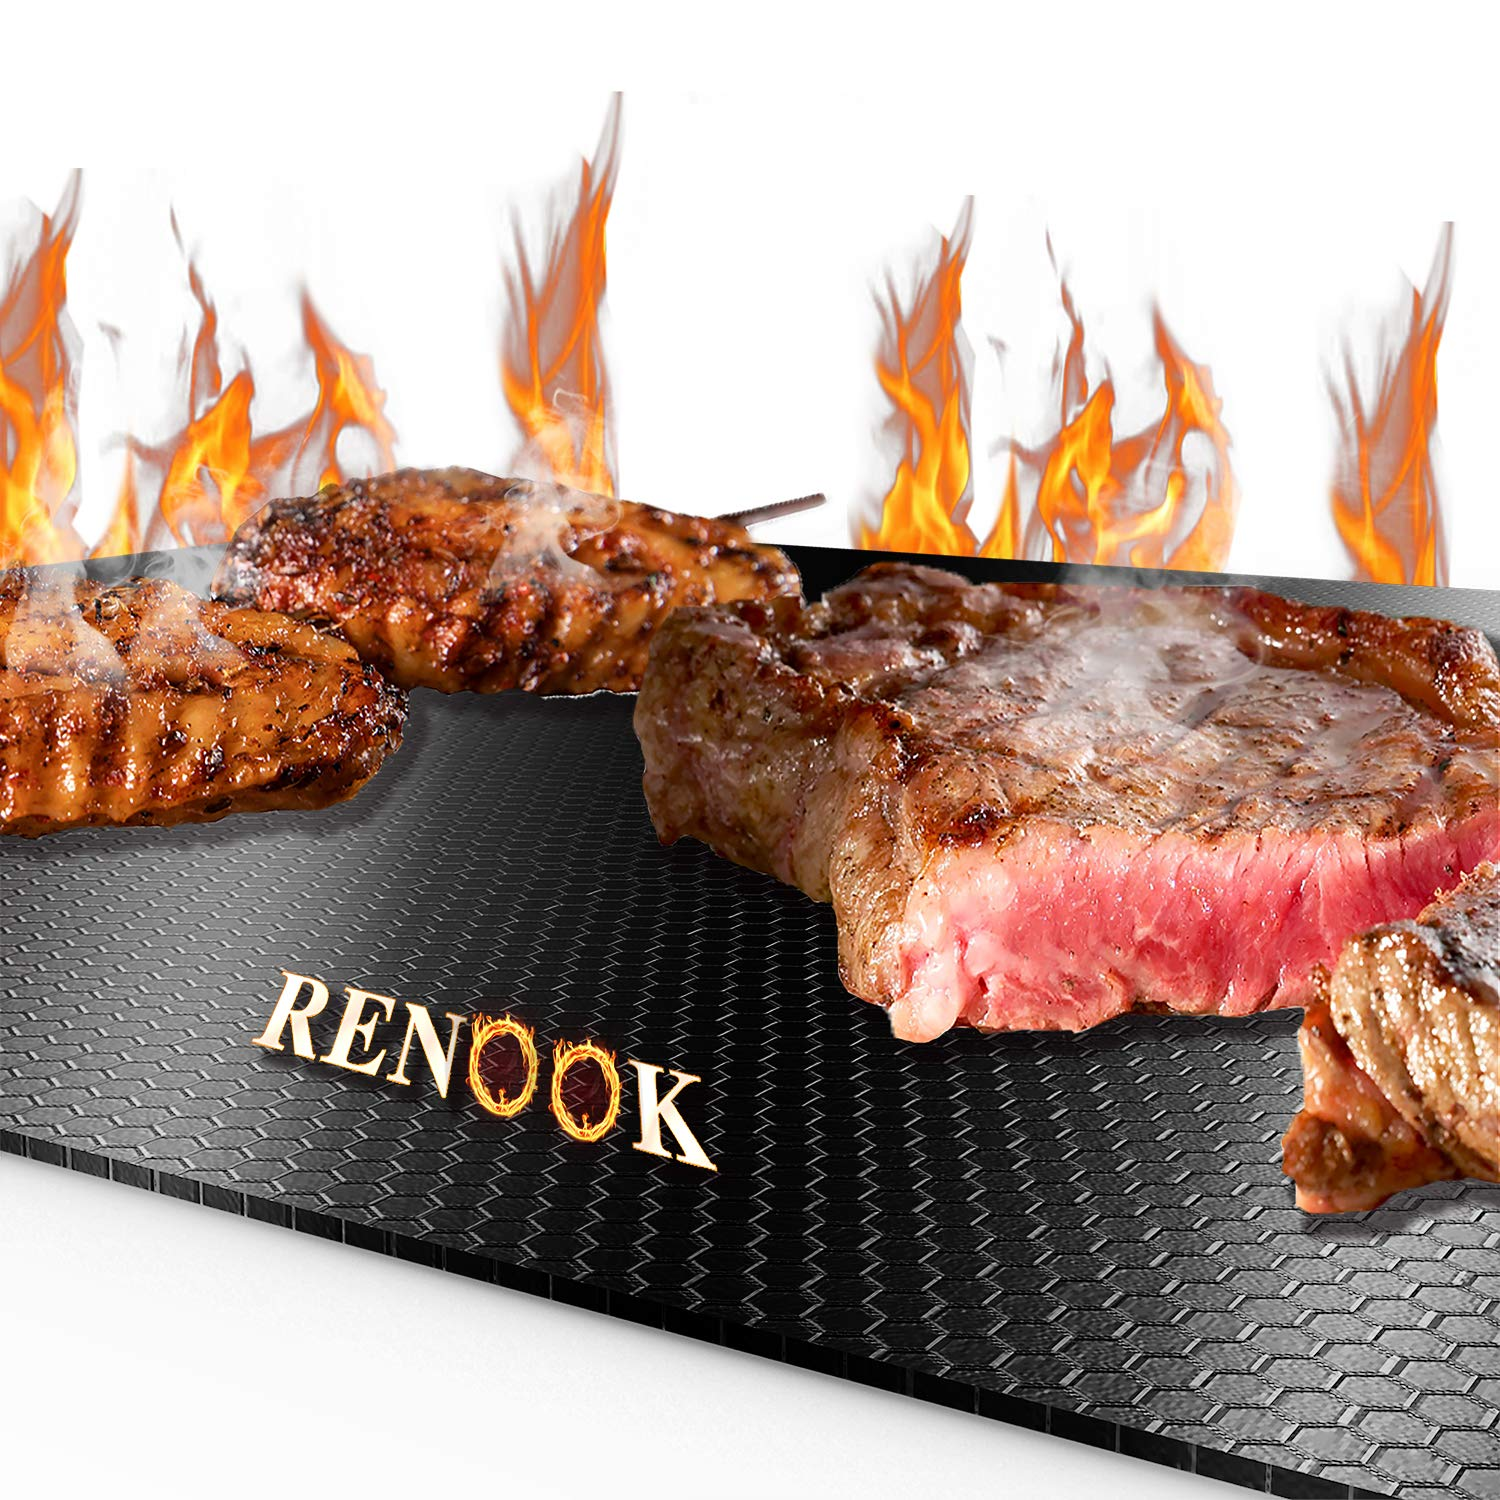 RENOOK Grill Mat Ultimate, Thickened 0.4mm in Thickness, Heavy Duty 600 Degree Non-Stick Grilling Sheets, Set of 2 BBQ Grill mats, 15.75 x 13-Inch, Black, by RENOOK